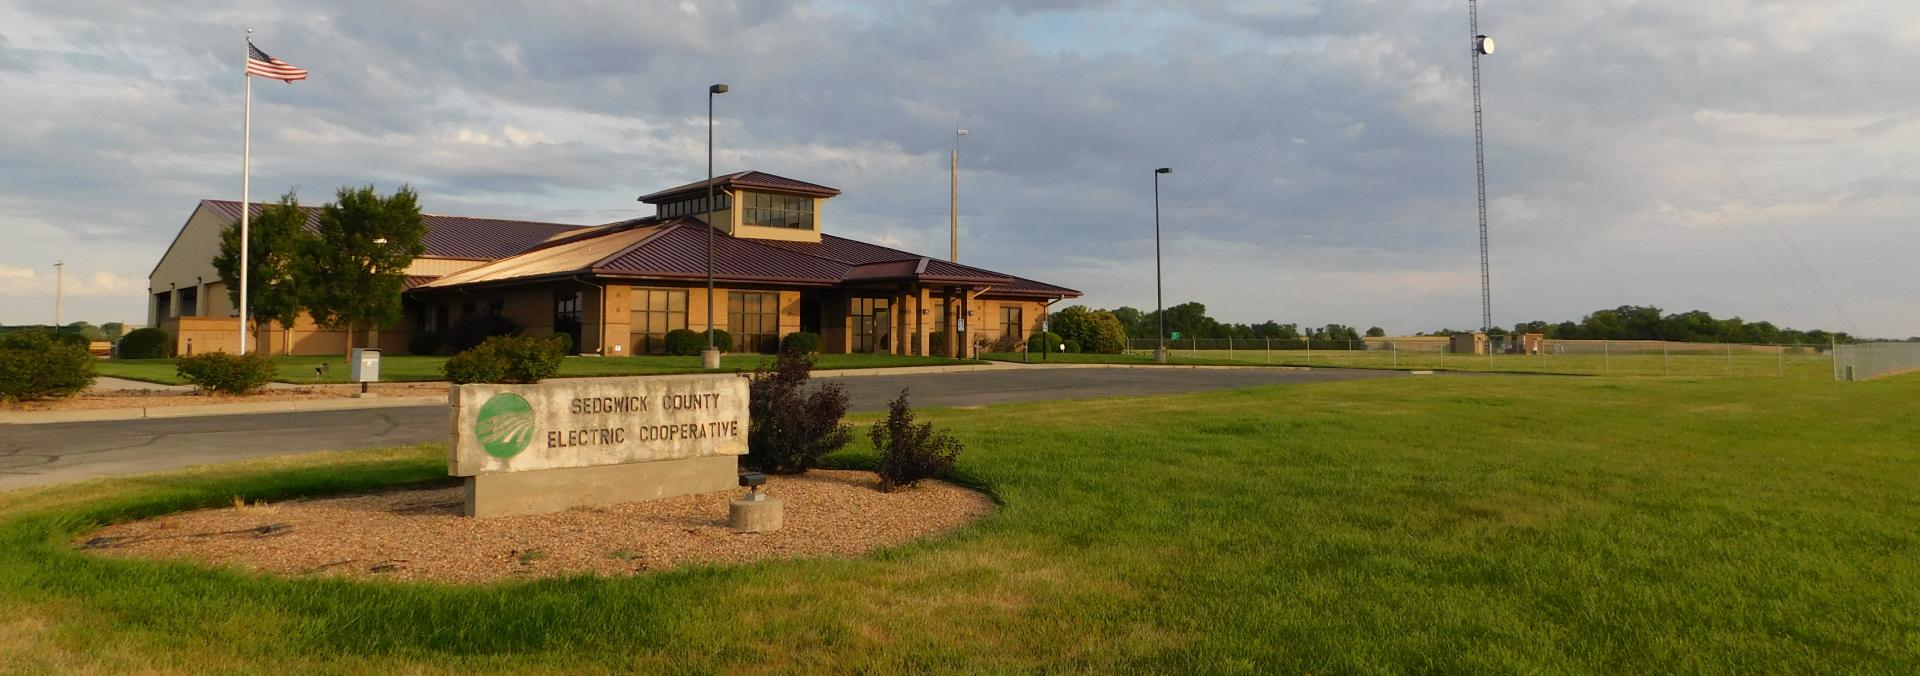 Sedgwick County Electric Cooperative Building